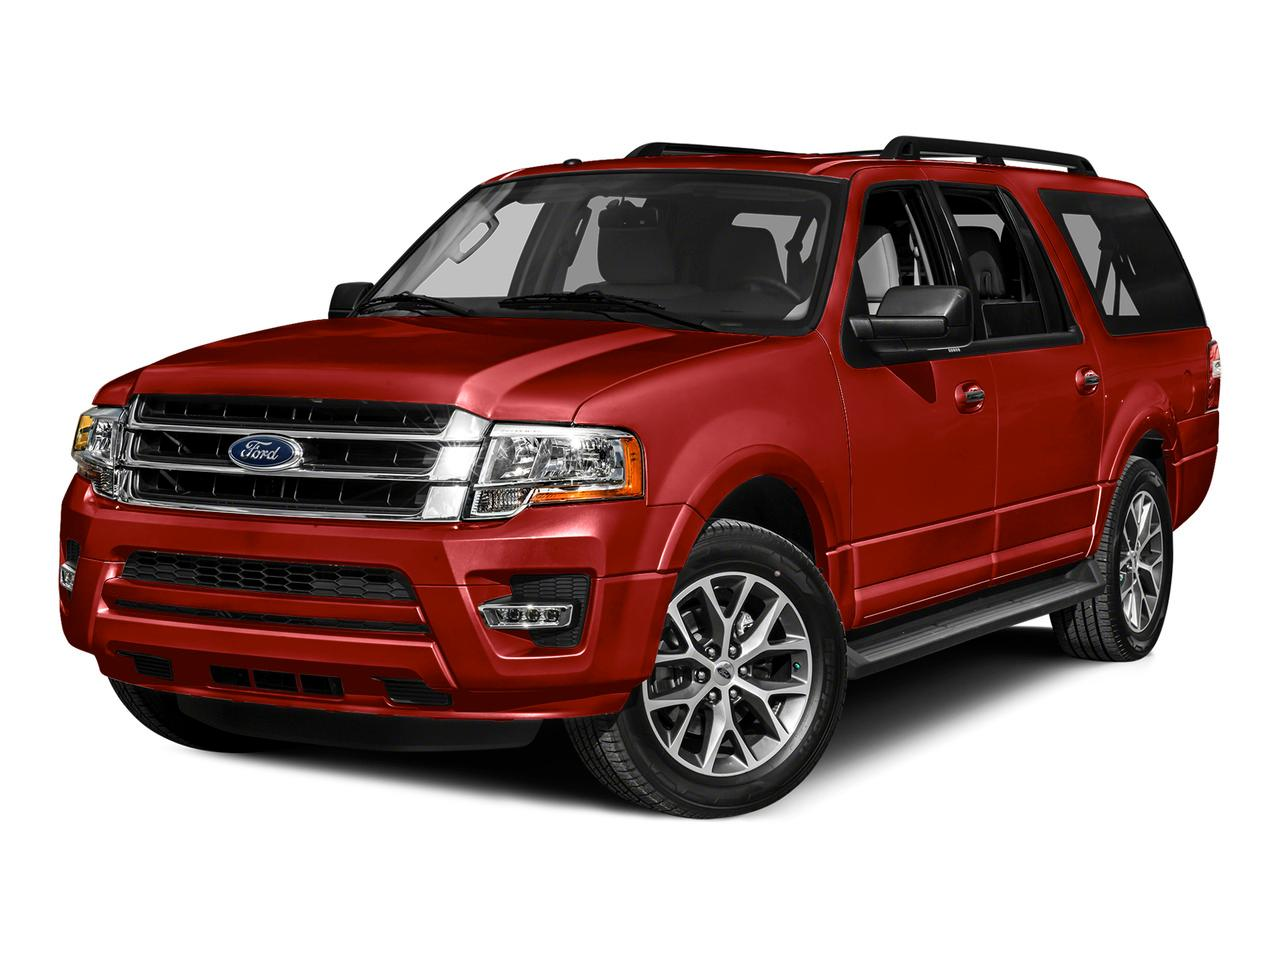 2015 Ford Expedition EL Vehicle Photo in Plainfield, IL 60586